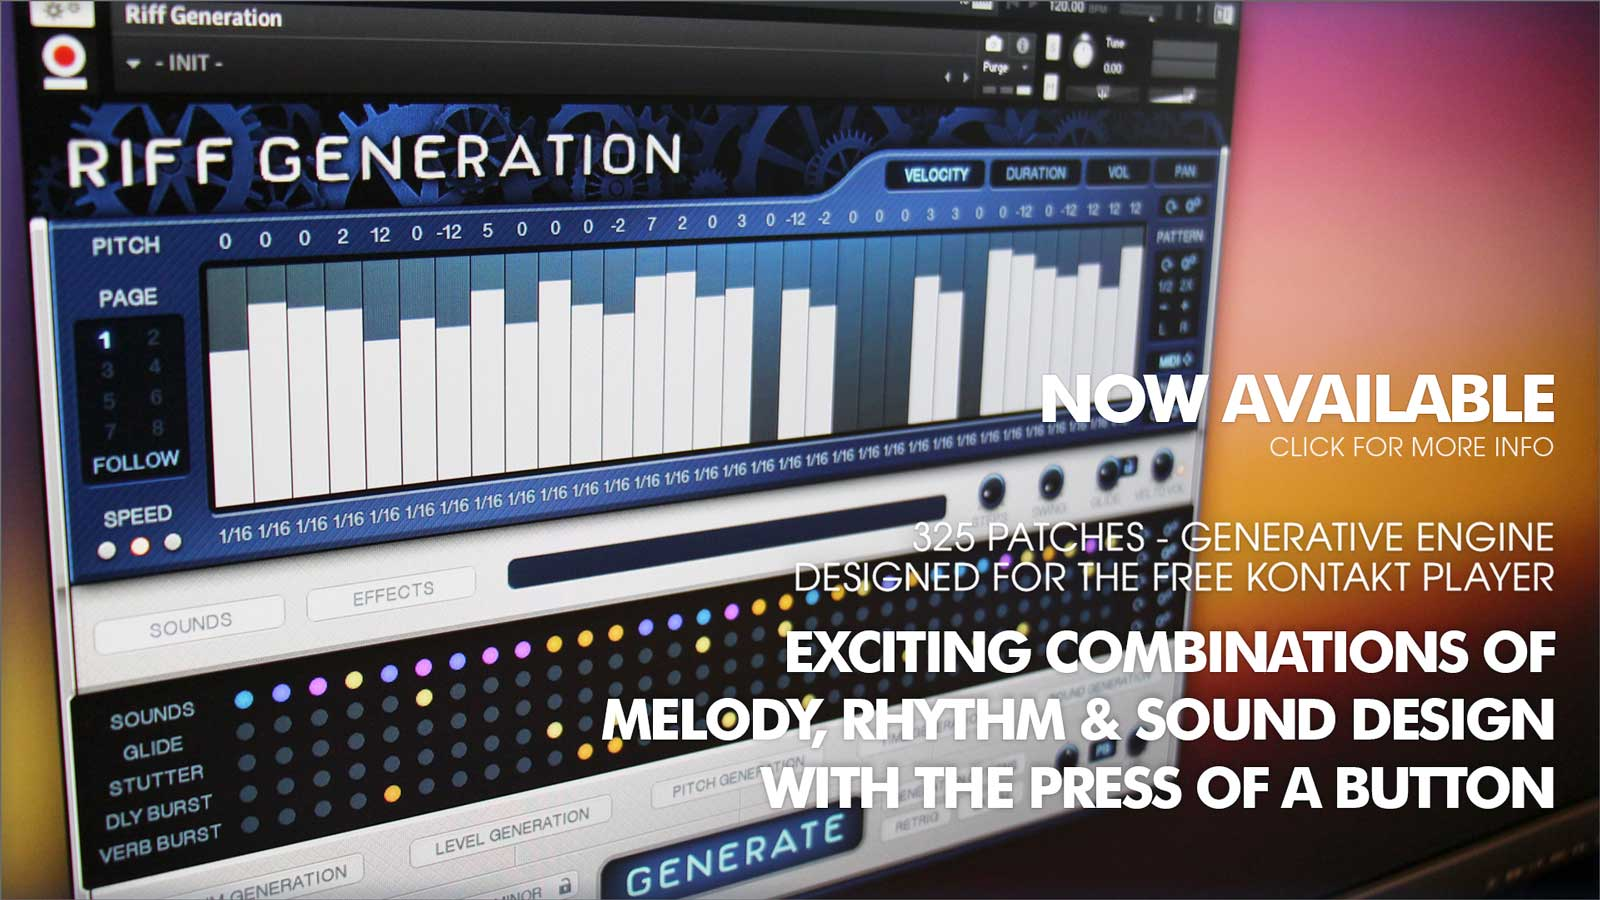 Riff Generation - Now Available